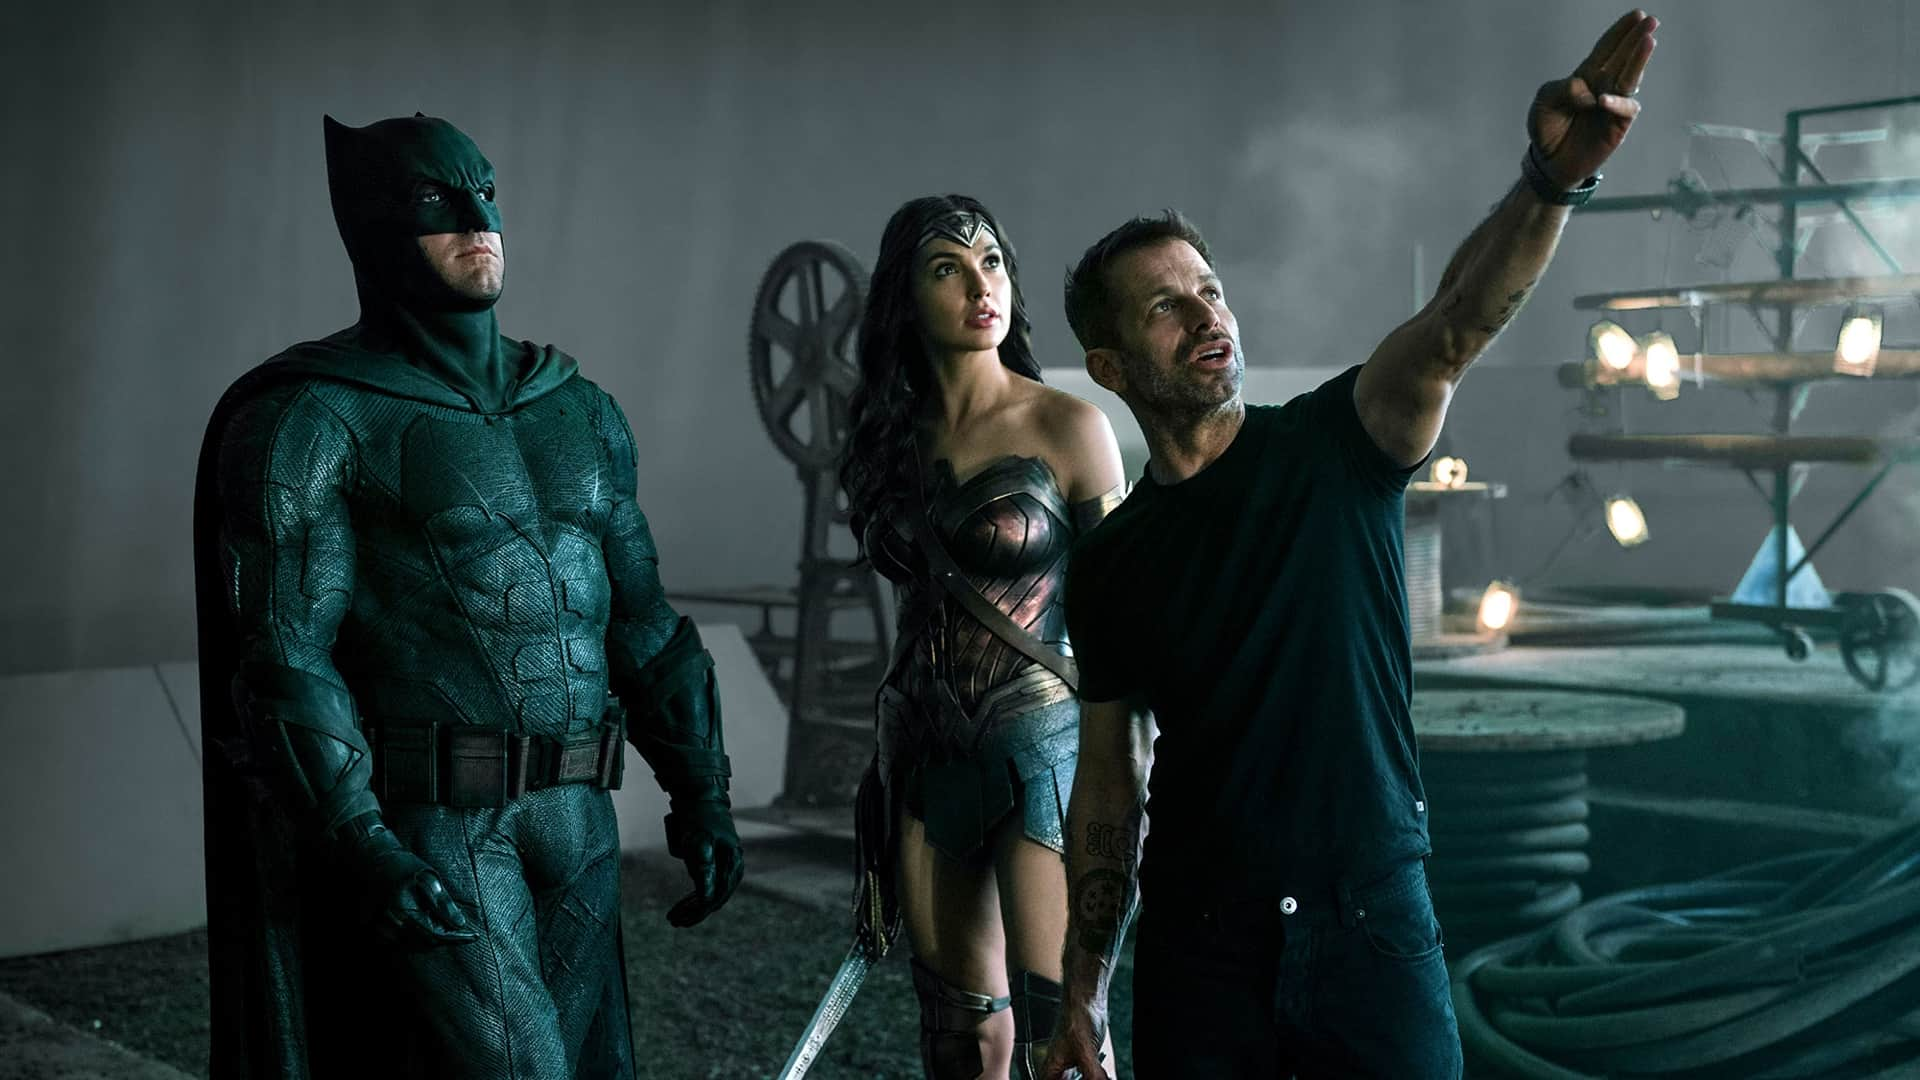 Zack Snyder's Directing Style: 5 Techniques from Zack Snyder Movies